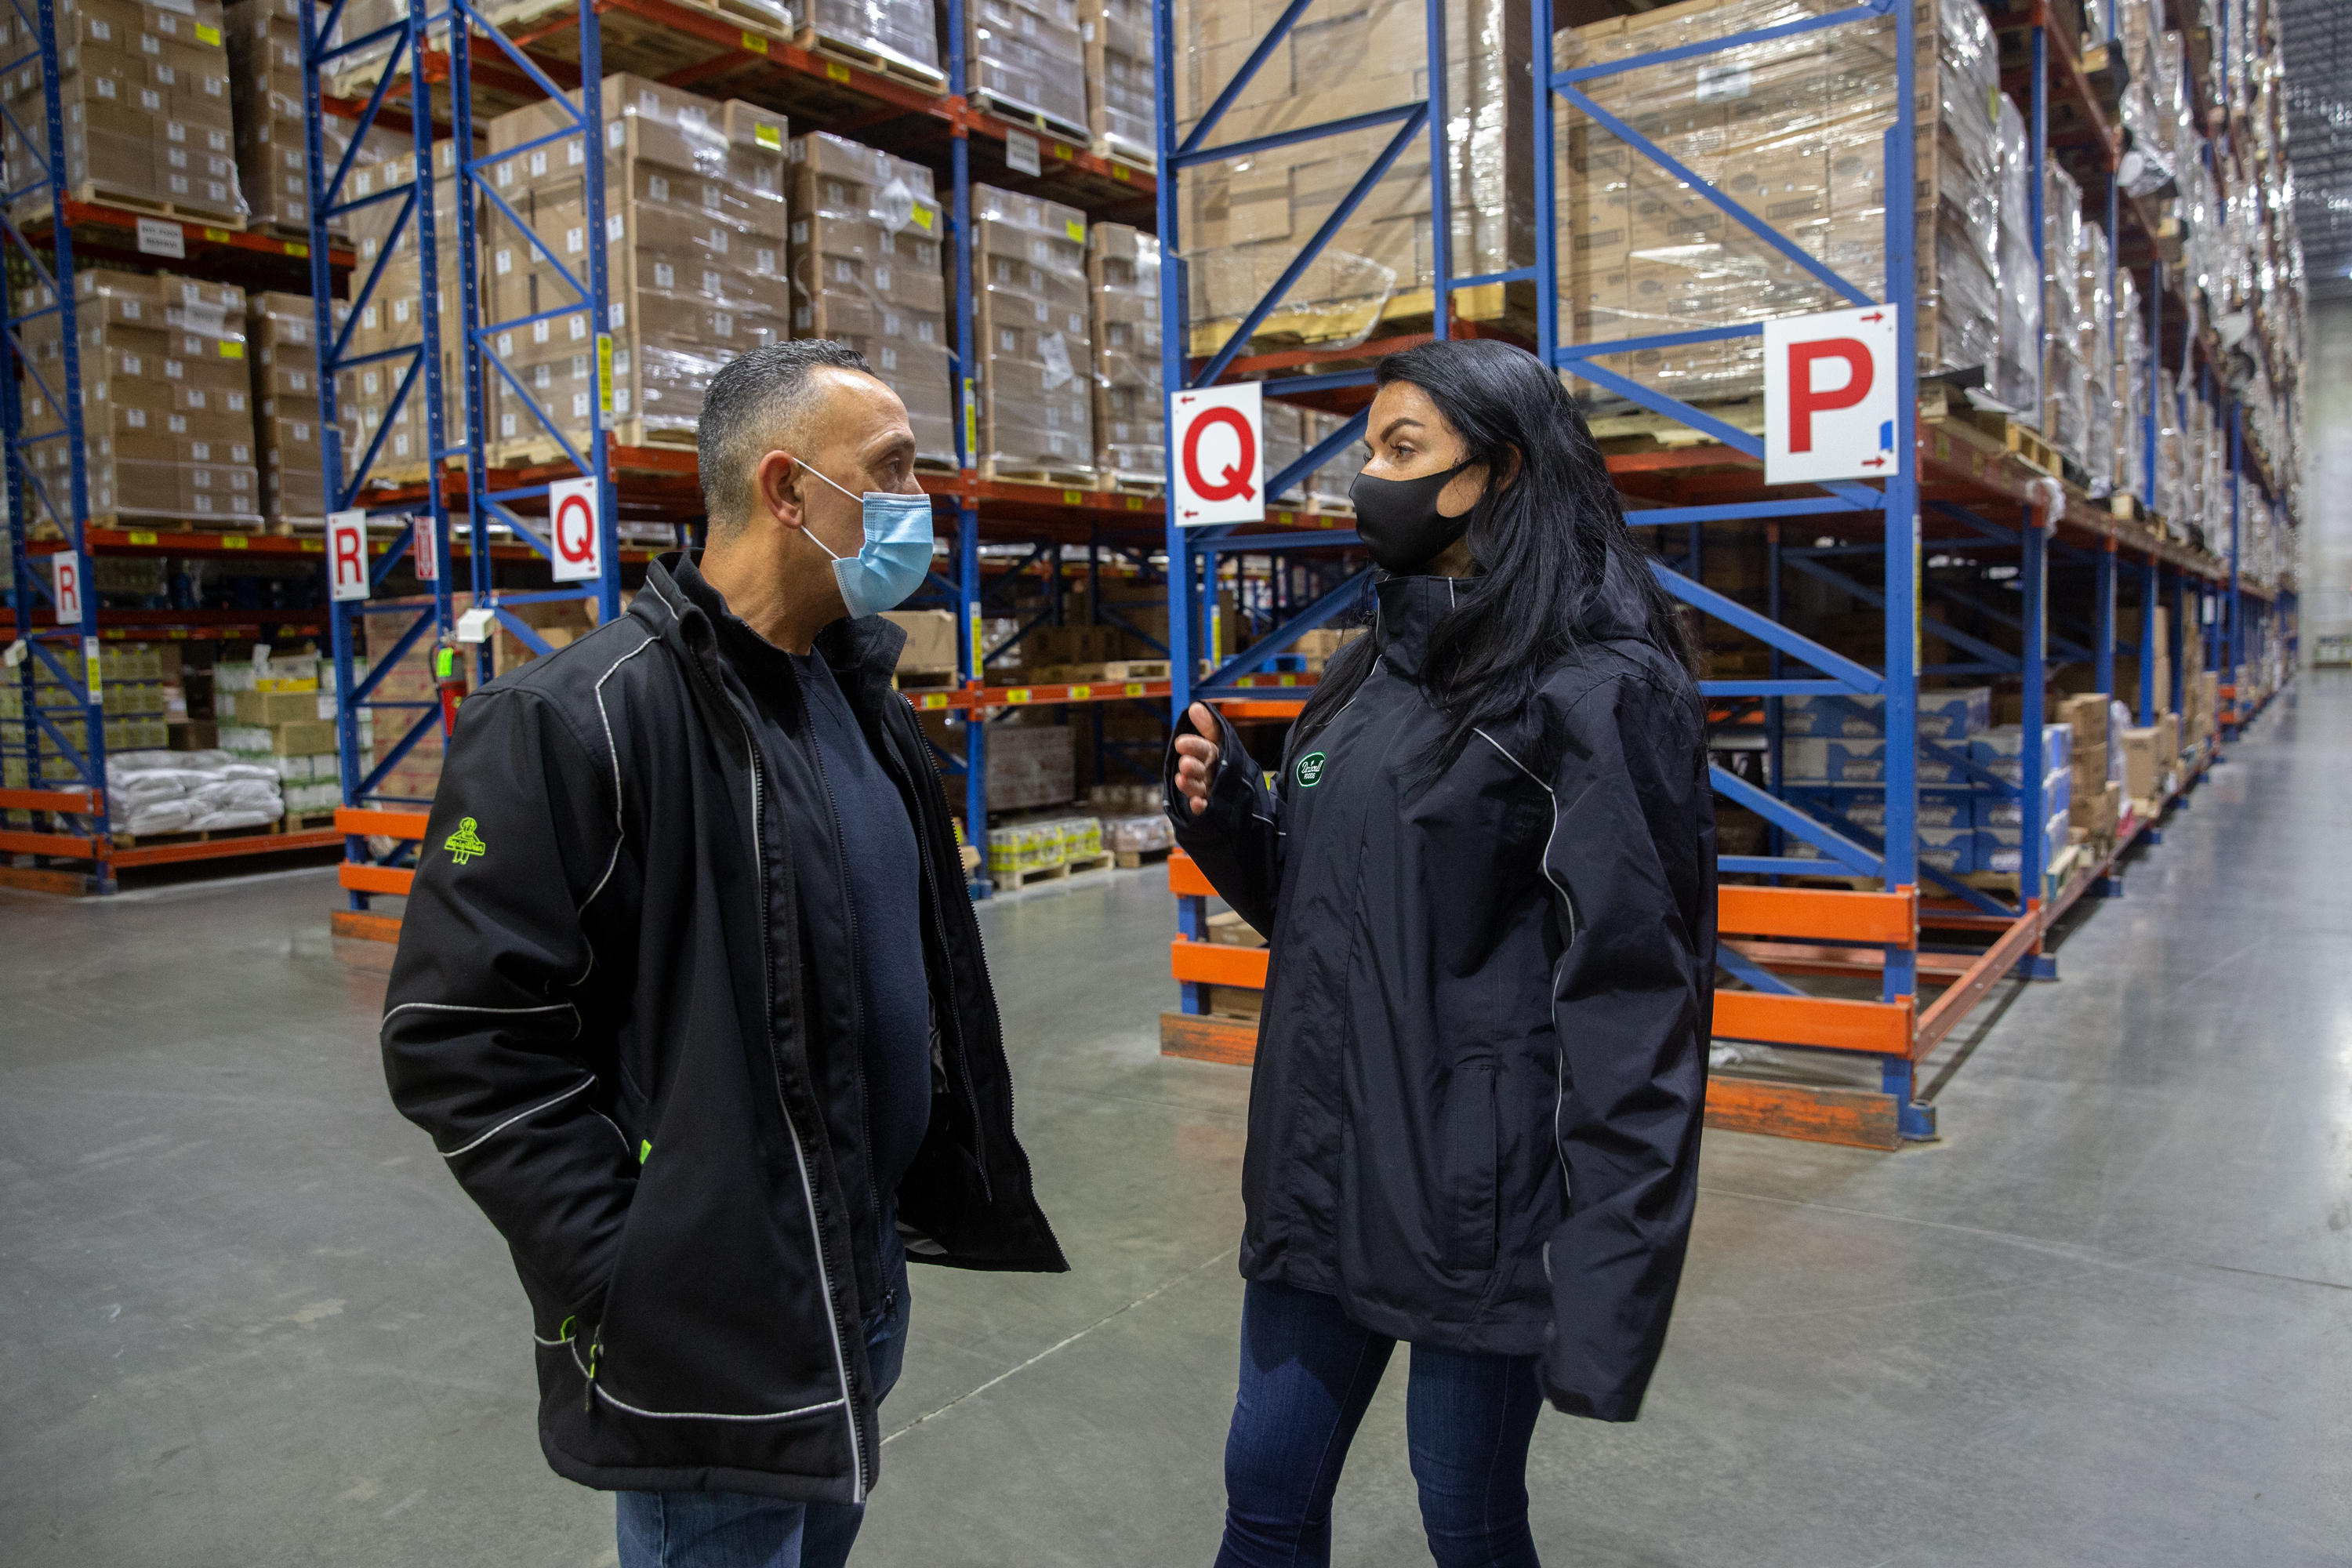 Warehouse manager Monte Santana speaks with VP of Operations Sara Kenyon in the warehouse stocked with food that soon will be delivered to nonprofit organizations like Masbia Soup Kitchen